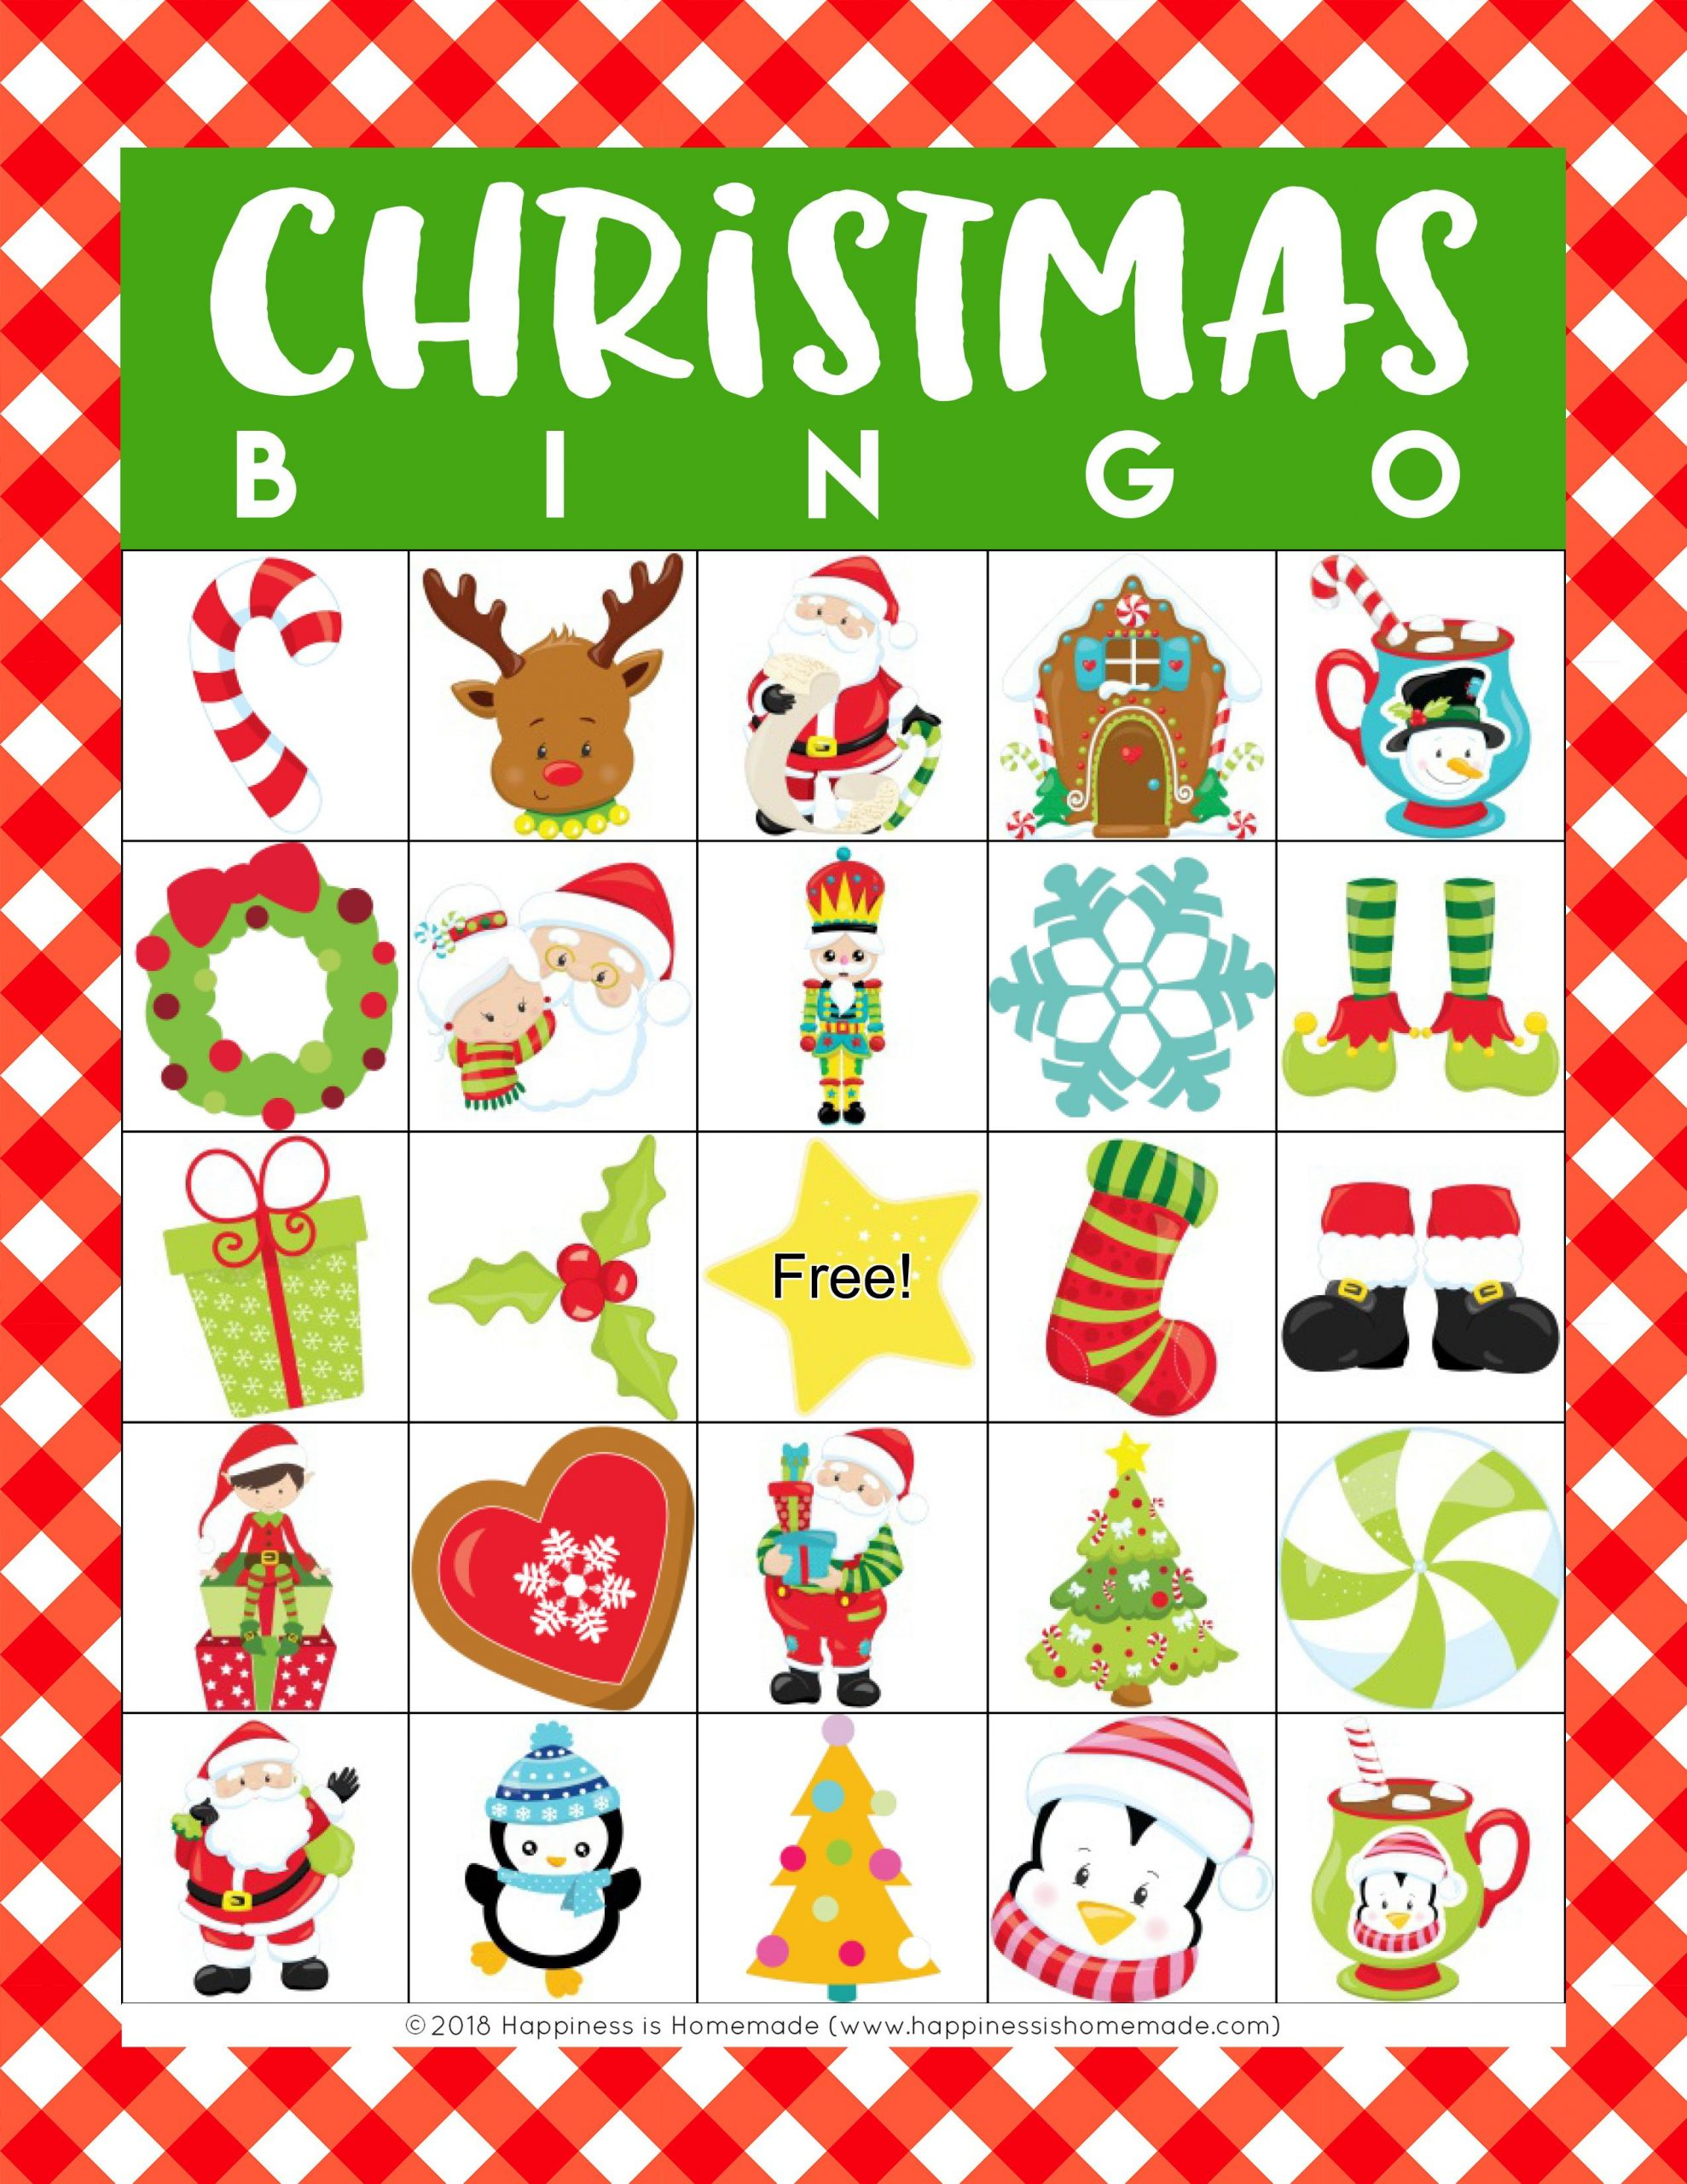 Christmas Bingo Game Printables - This Festive Christmas